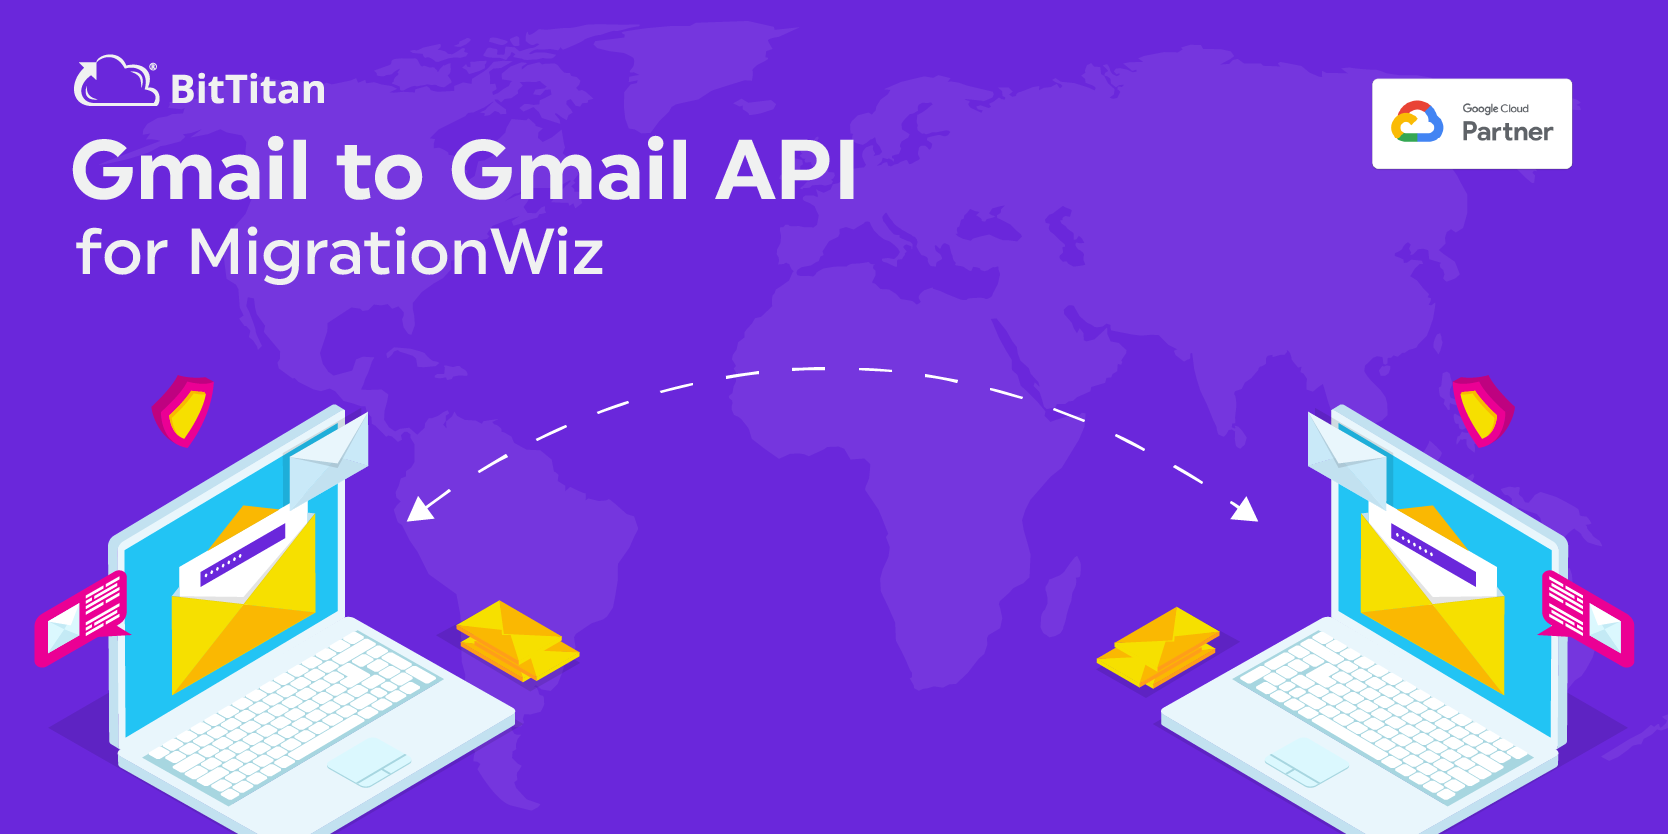 Gmail to Gmail Migrations Are Faster and More Secure with MigrationWiz and the Gmail API